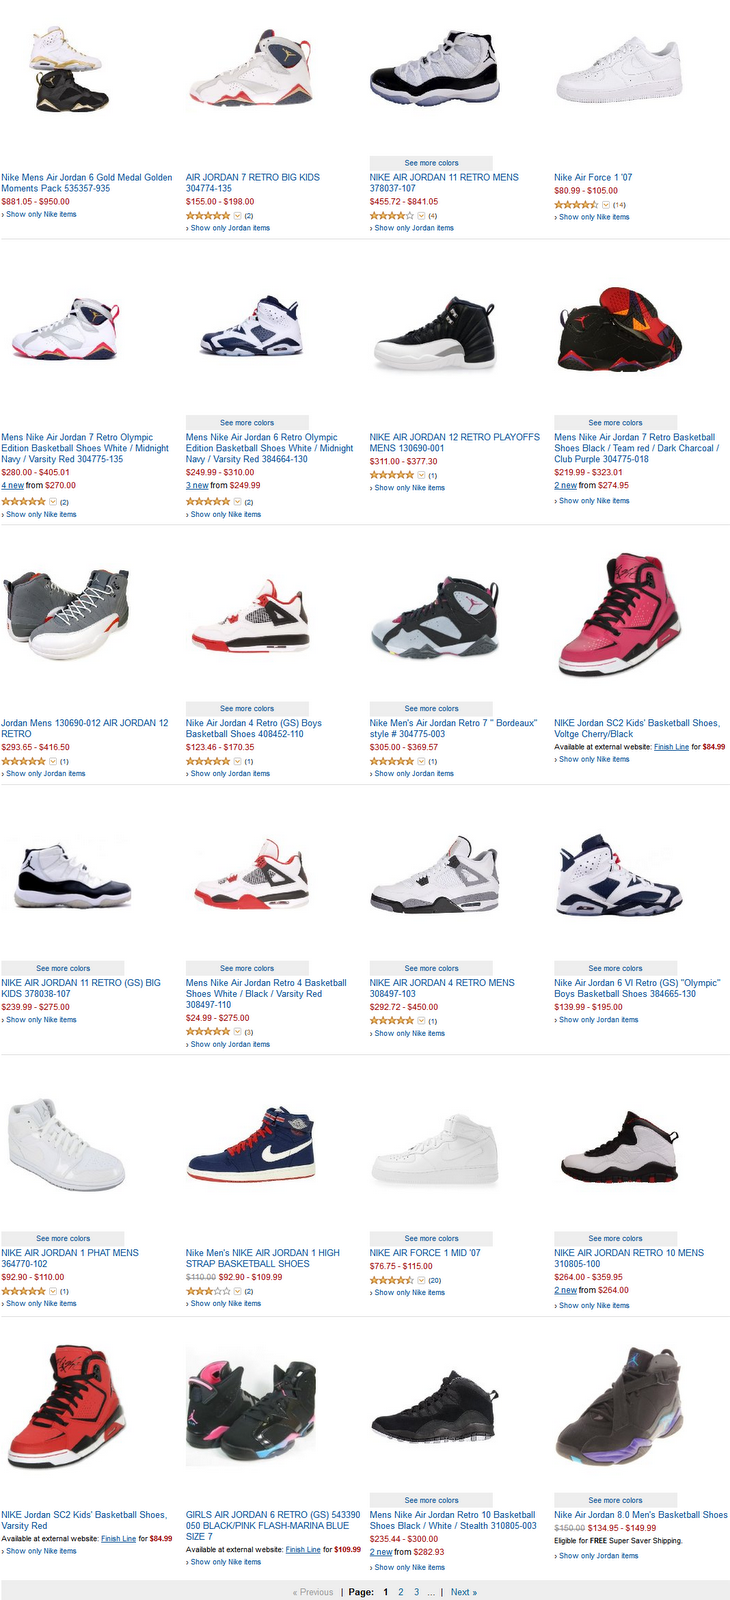 Review Cheap Air Jordan Shoes New And Discount Price View My Blog News